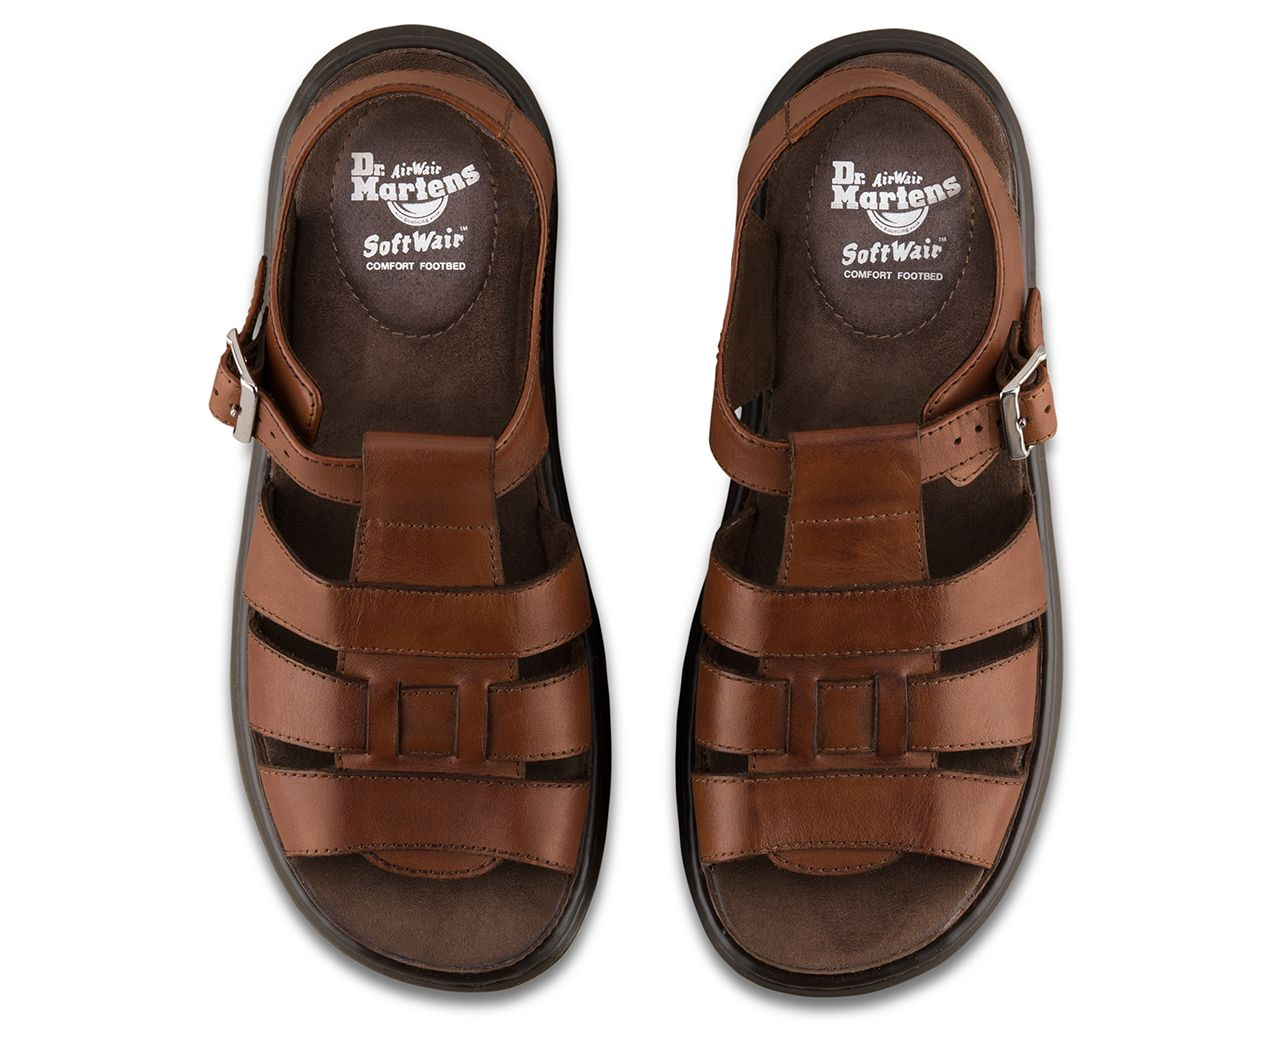 Dr Martens Carolyn Ii Boot Shoes Women Womens Sandals Army Boots